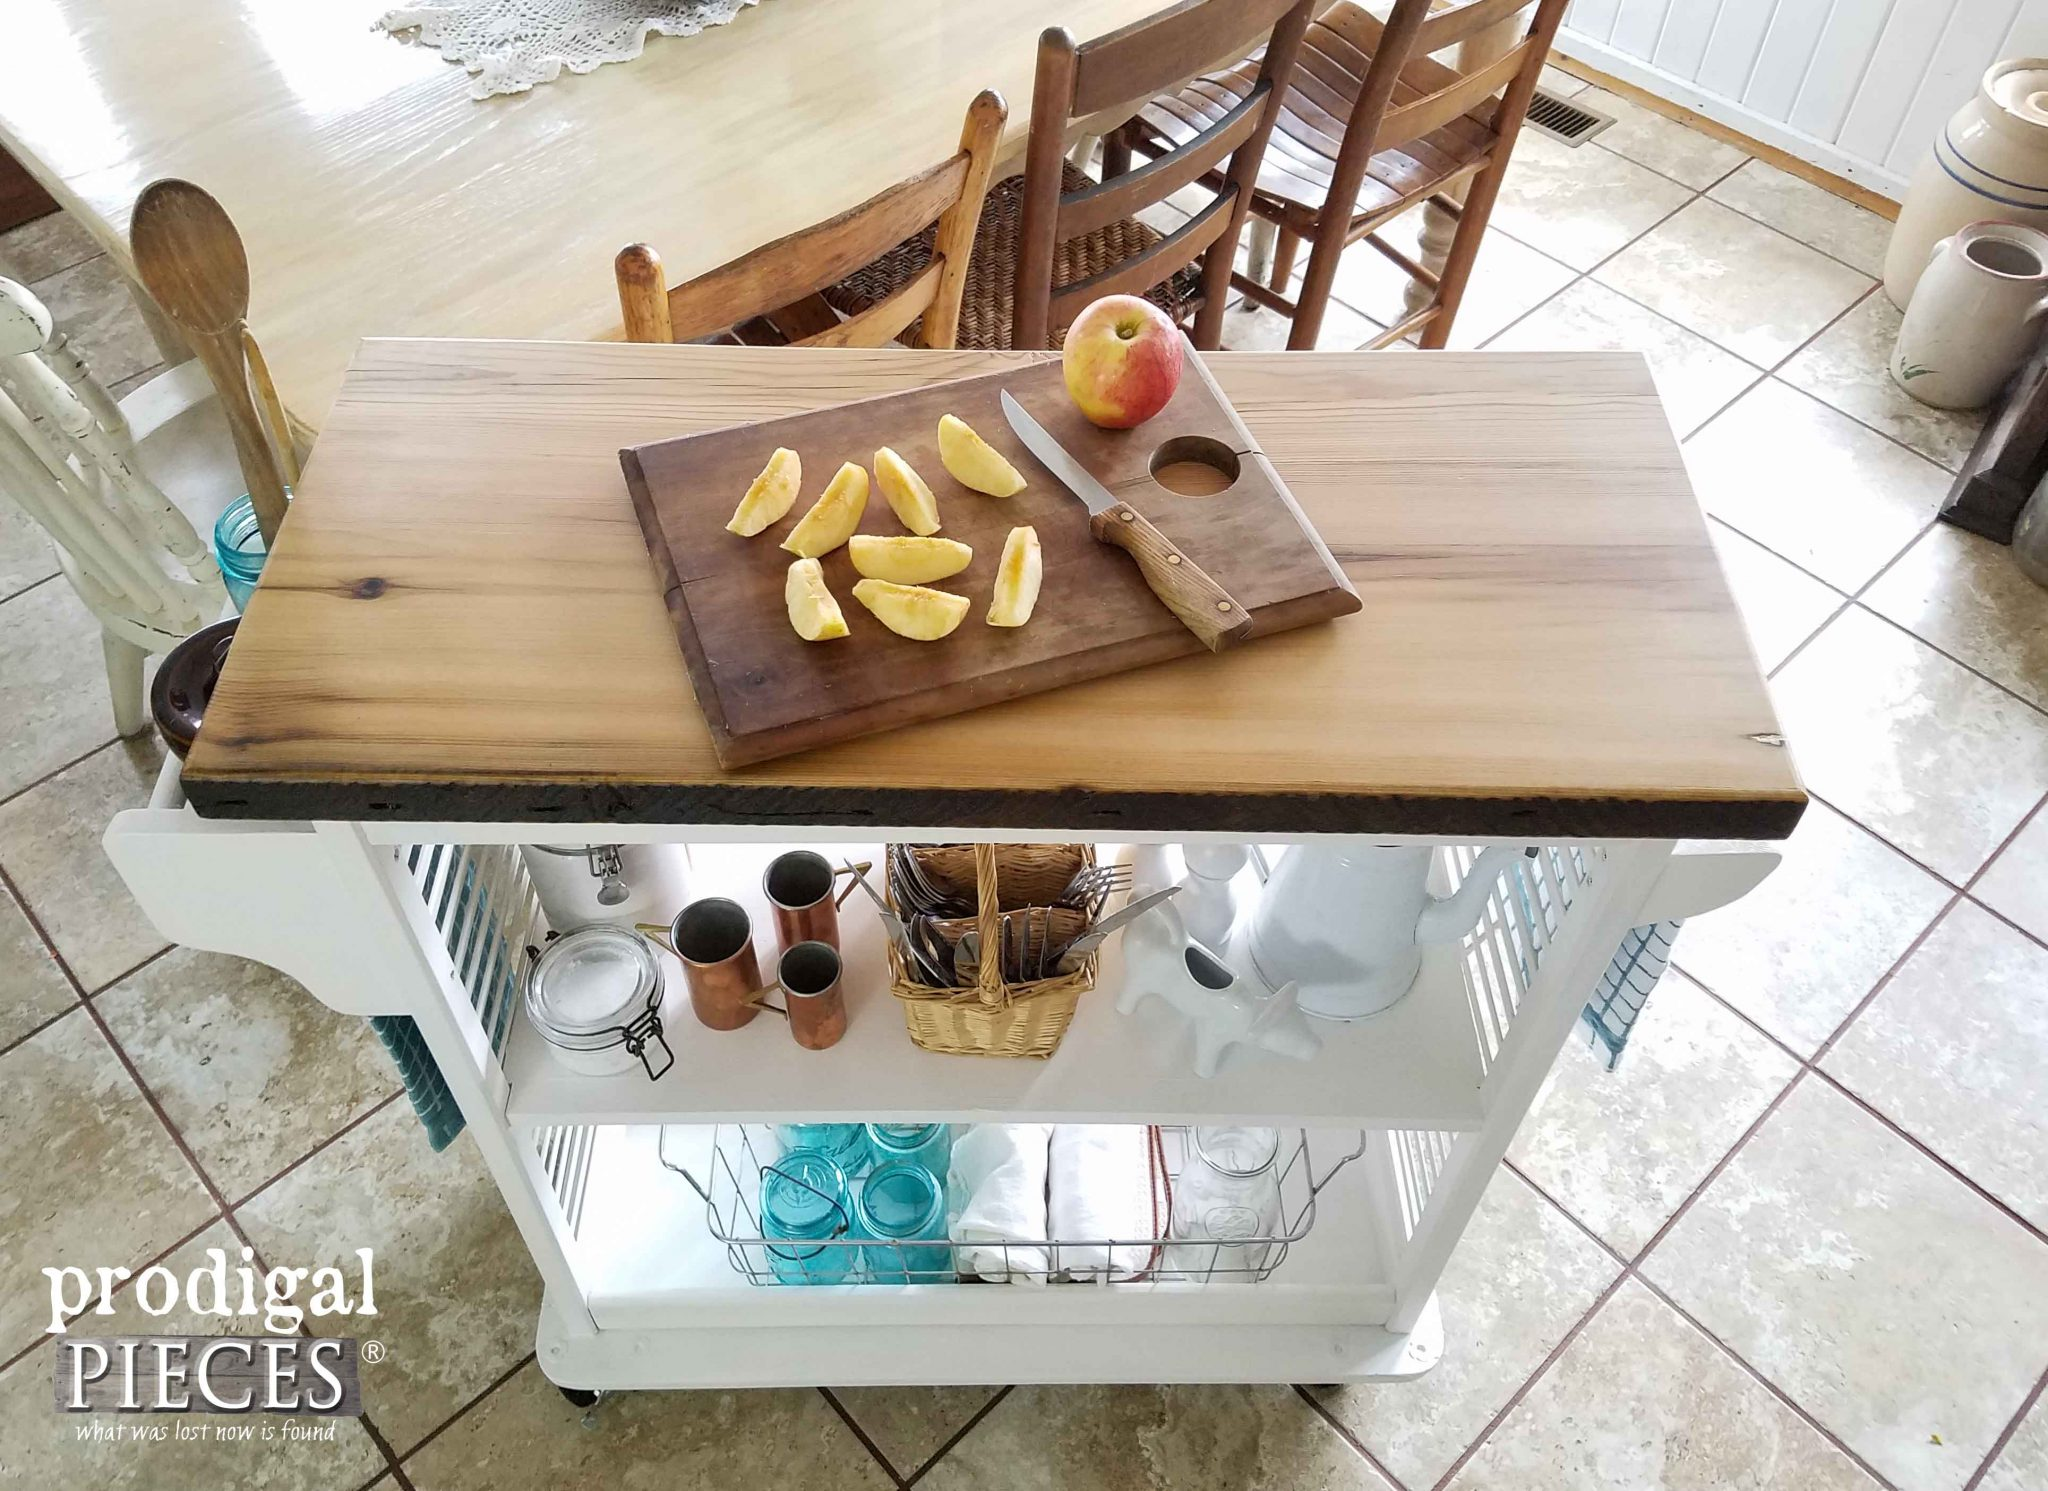 Reclaimed Wood Top on Kitchen Cart by Prodigal Pieces | prodigalpieces.com